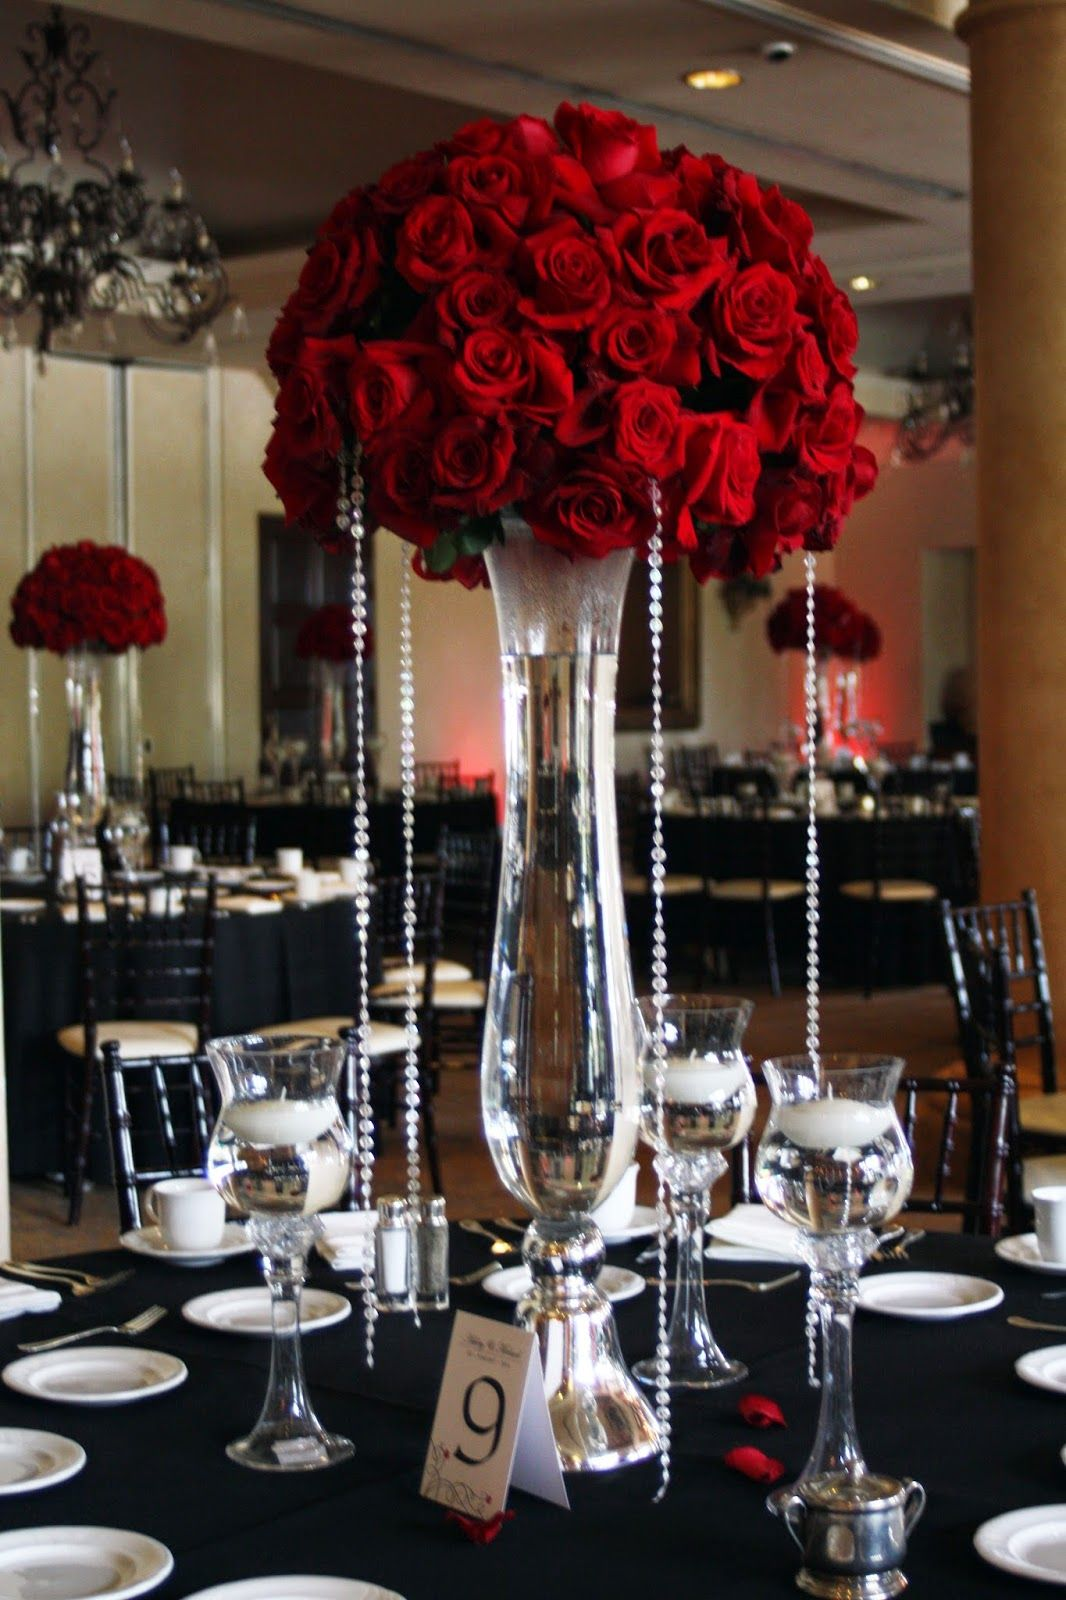 Tall red rose wedding centerpiece only with dripping beads or dripping  diamond strands